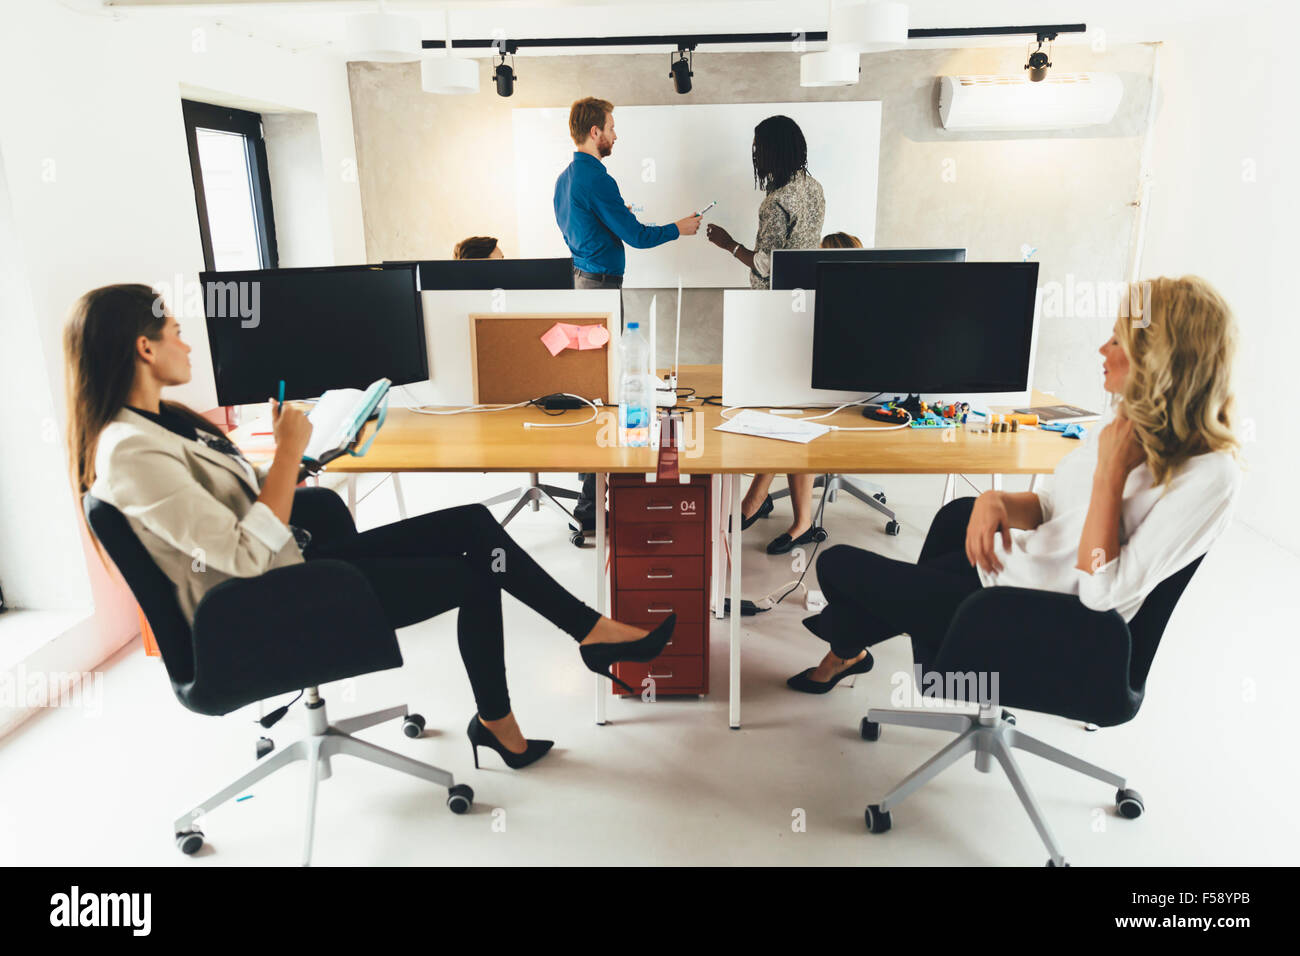 Young business people sitting in office while listening to the lecturer and learning new technologies displayed - Stock Image